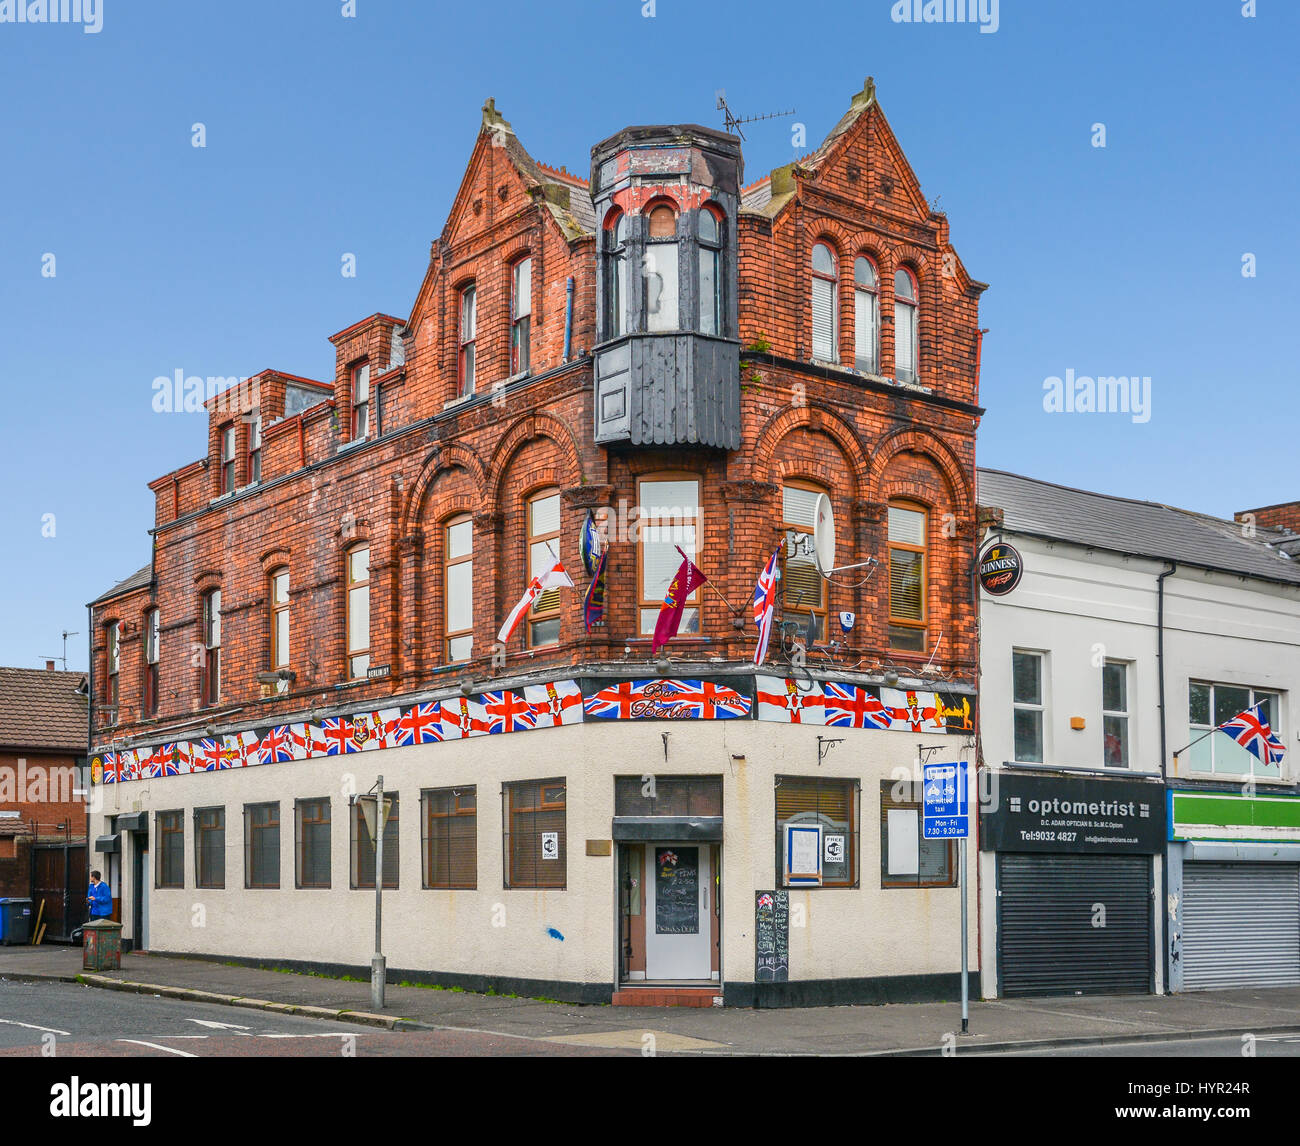 Brick house with UK flags near Shankill Road in Belfast, Northern Ireland - Stock Image